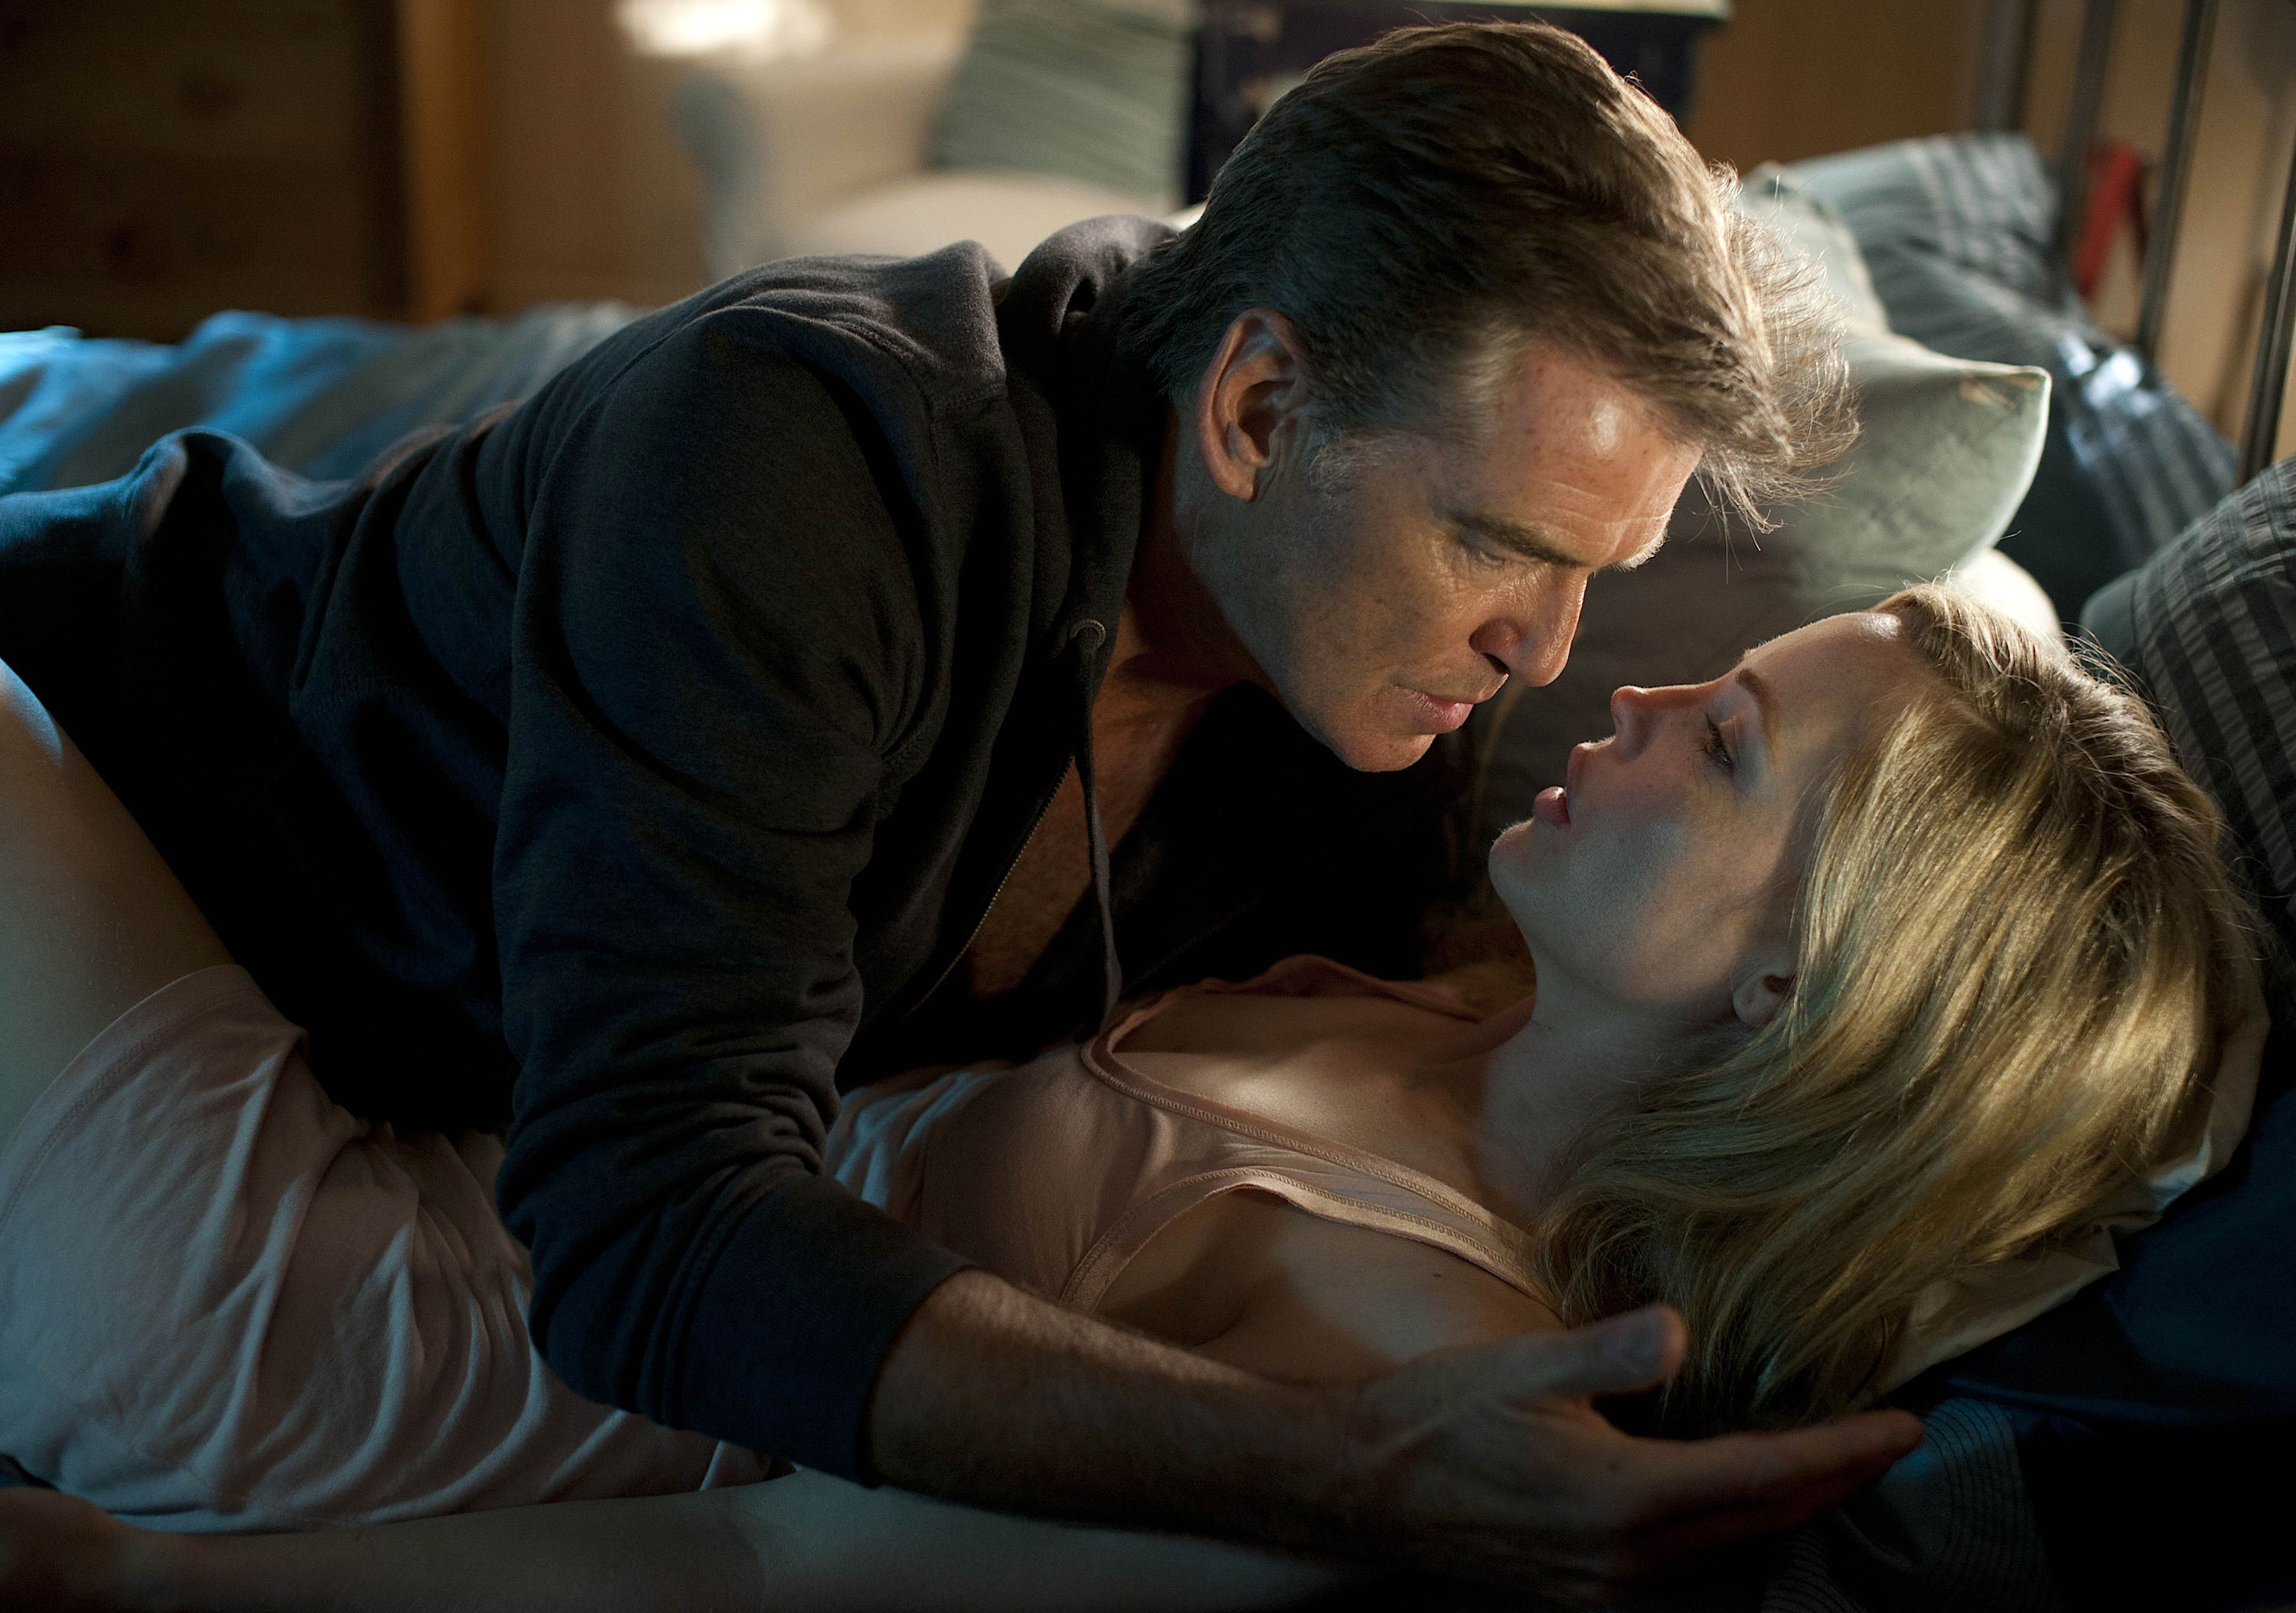 Pierce Brosnan, Melissa George in Bag of Bones (2011)